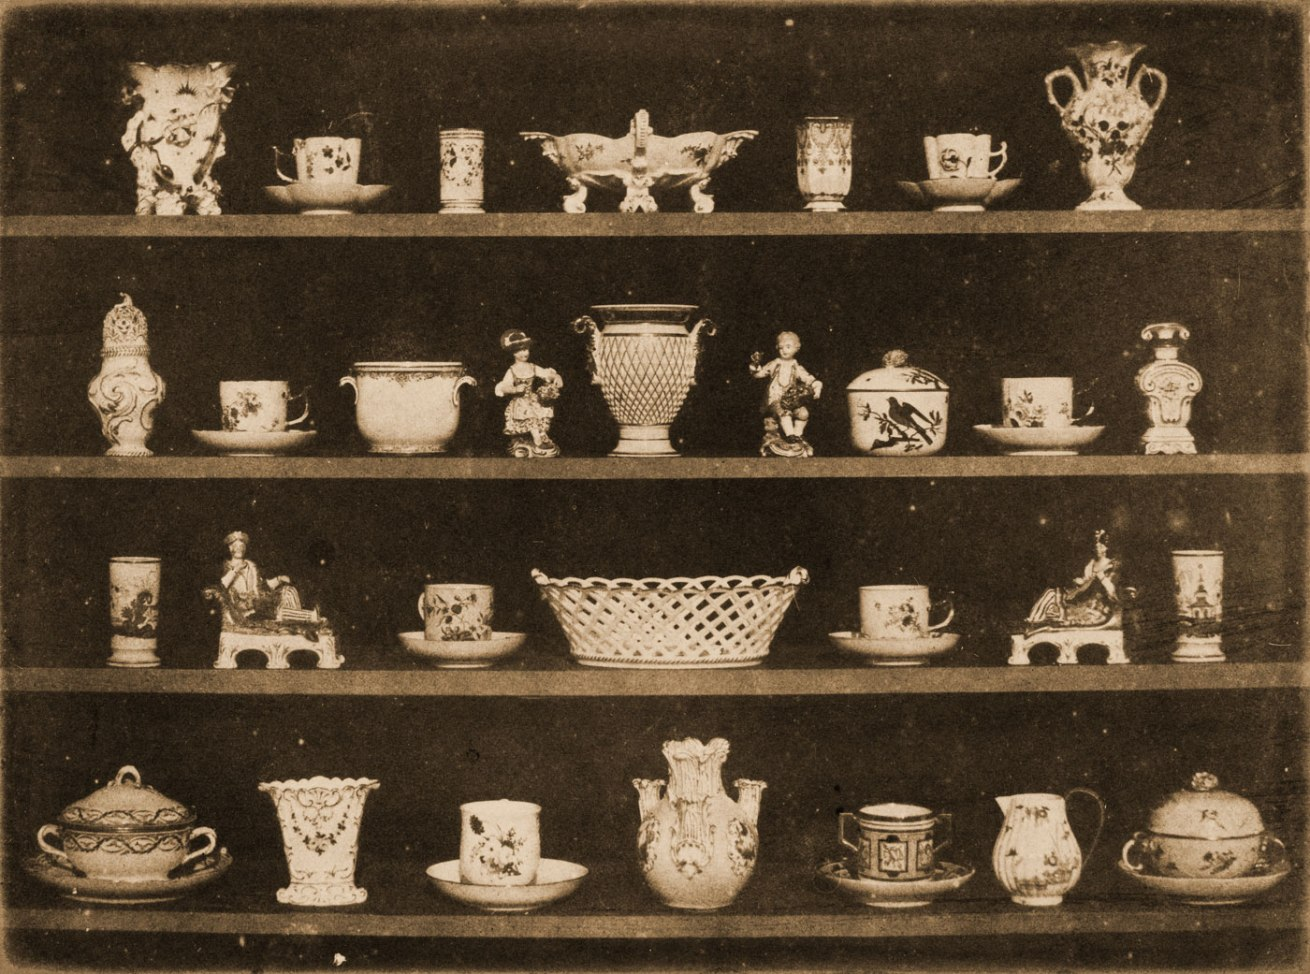 William Henry Fox Talbot <br />Articles of China<br />c. 1844<br />Calotype<br />5 3/8 x 7 1/8 in. (13.65 x 18.1 cm)<br />The Marjorie and Leonard Vernon Collection, gift of The Annenberg Foundation, acquired from Carol Vernon and Robert Turbin